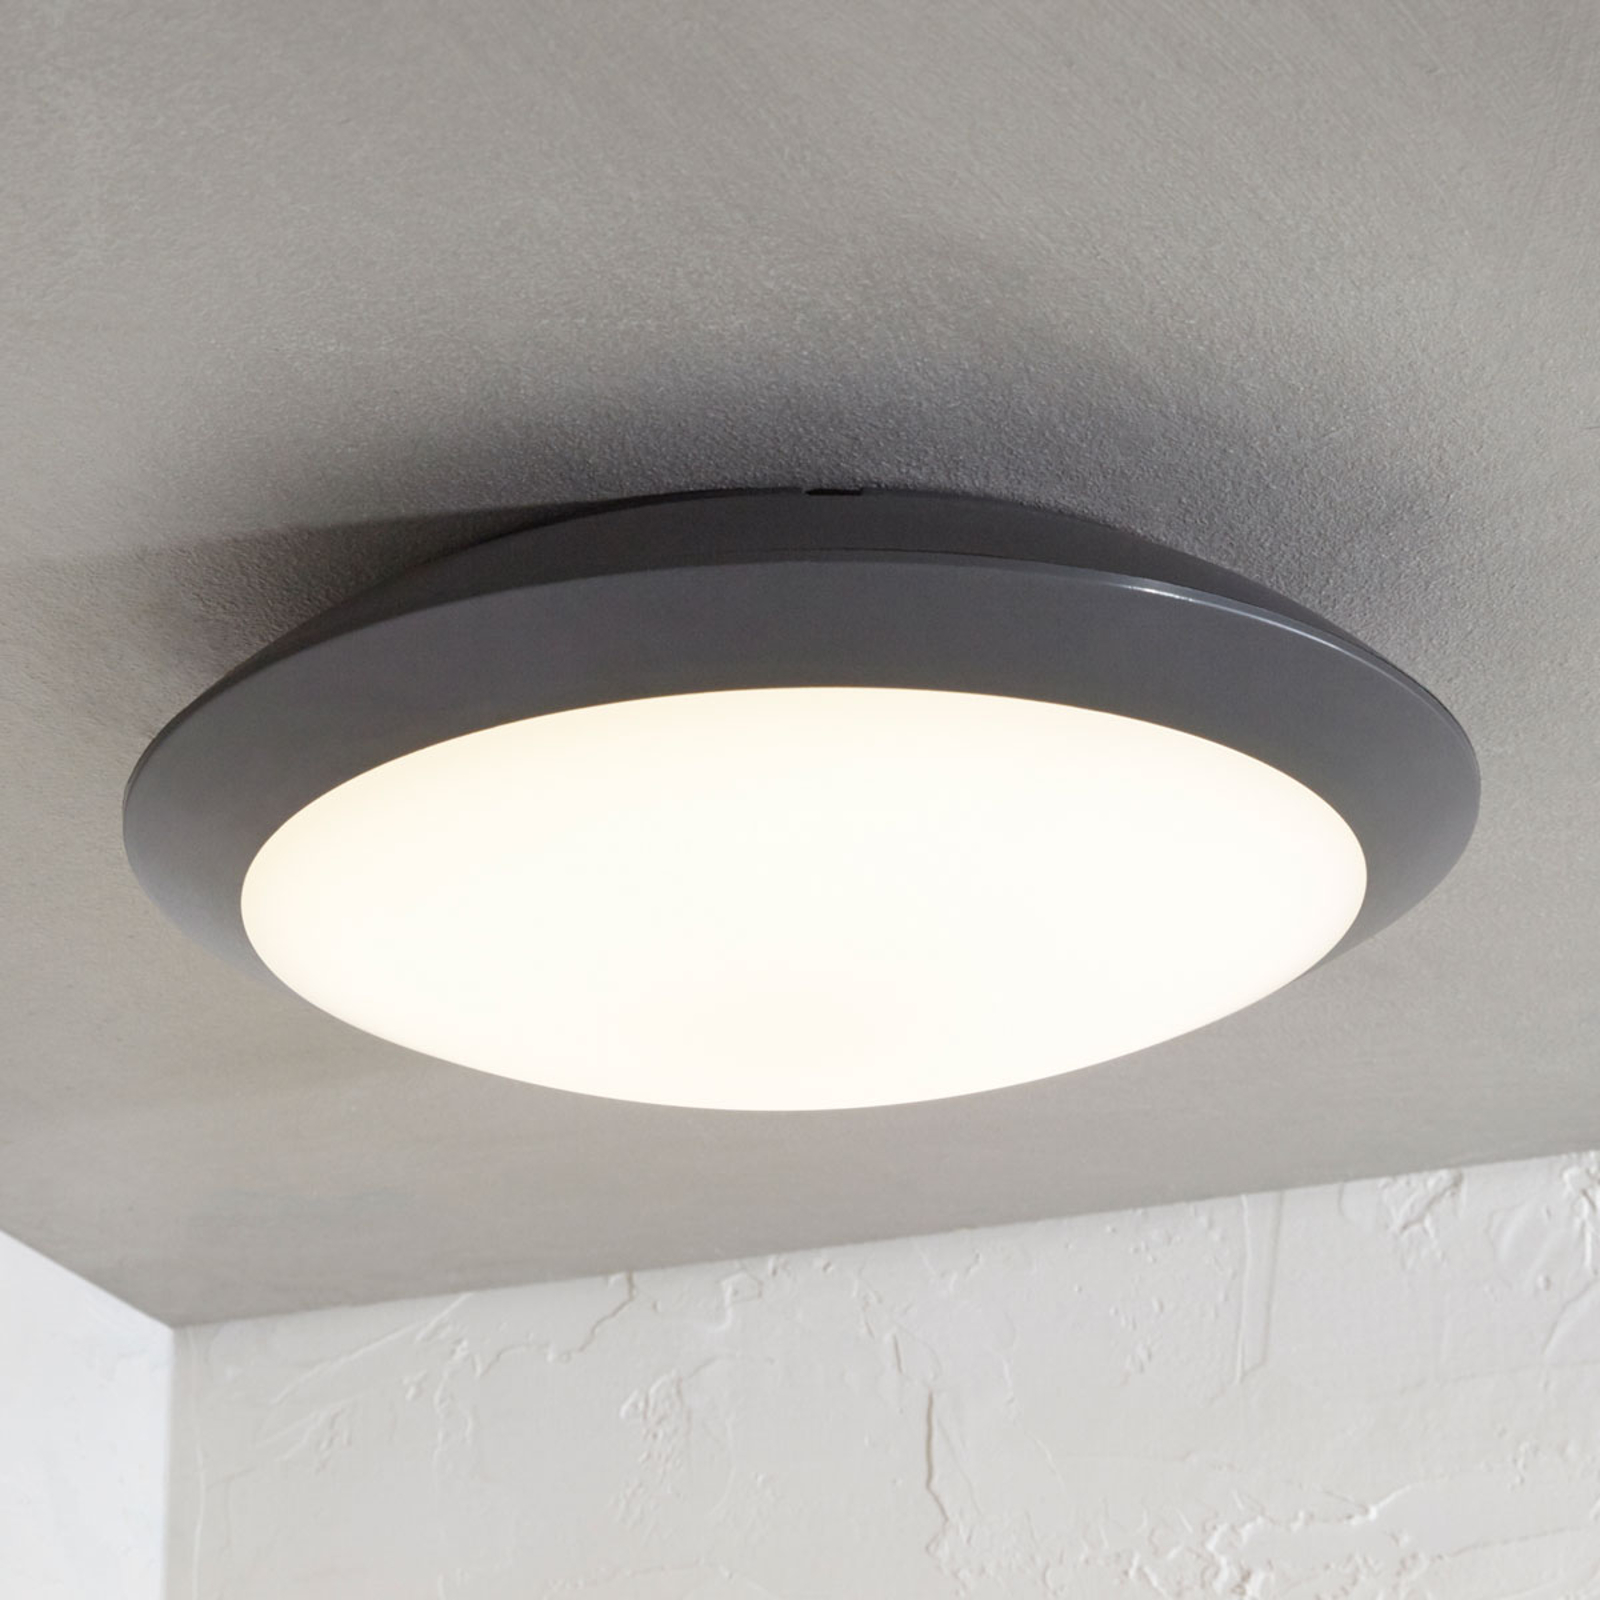 Naira LED outdoor ceiling lamp grey without sensor_9949018_1